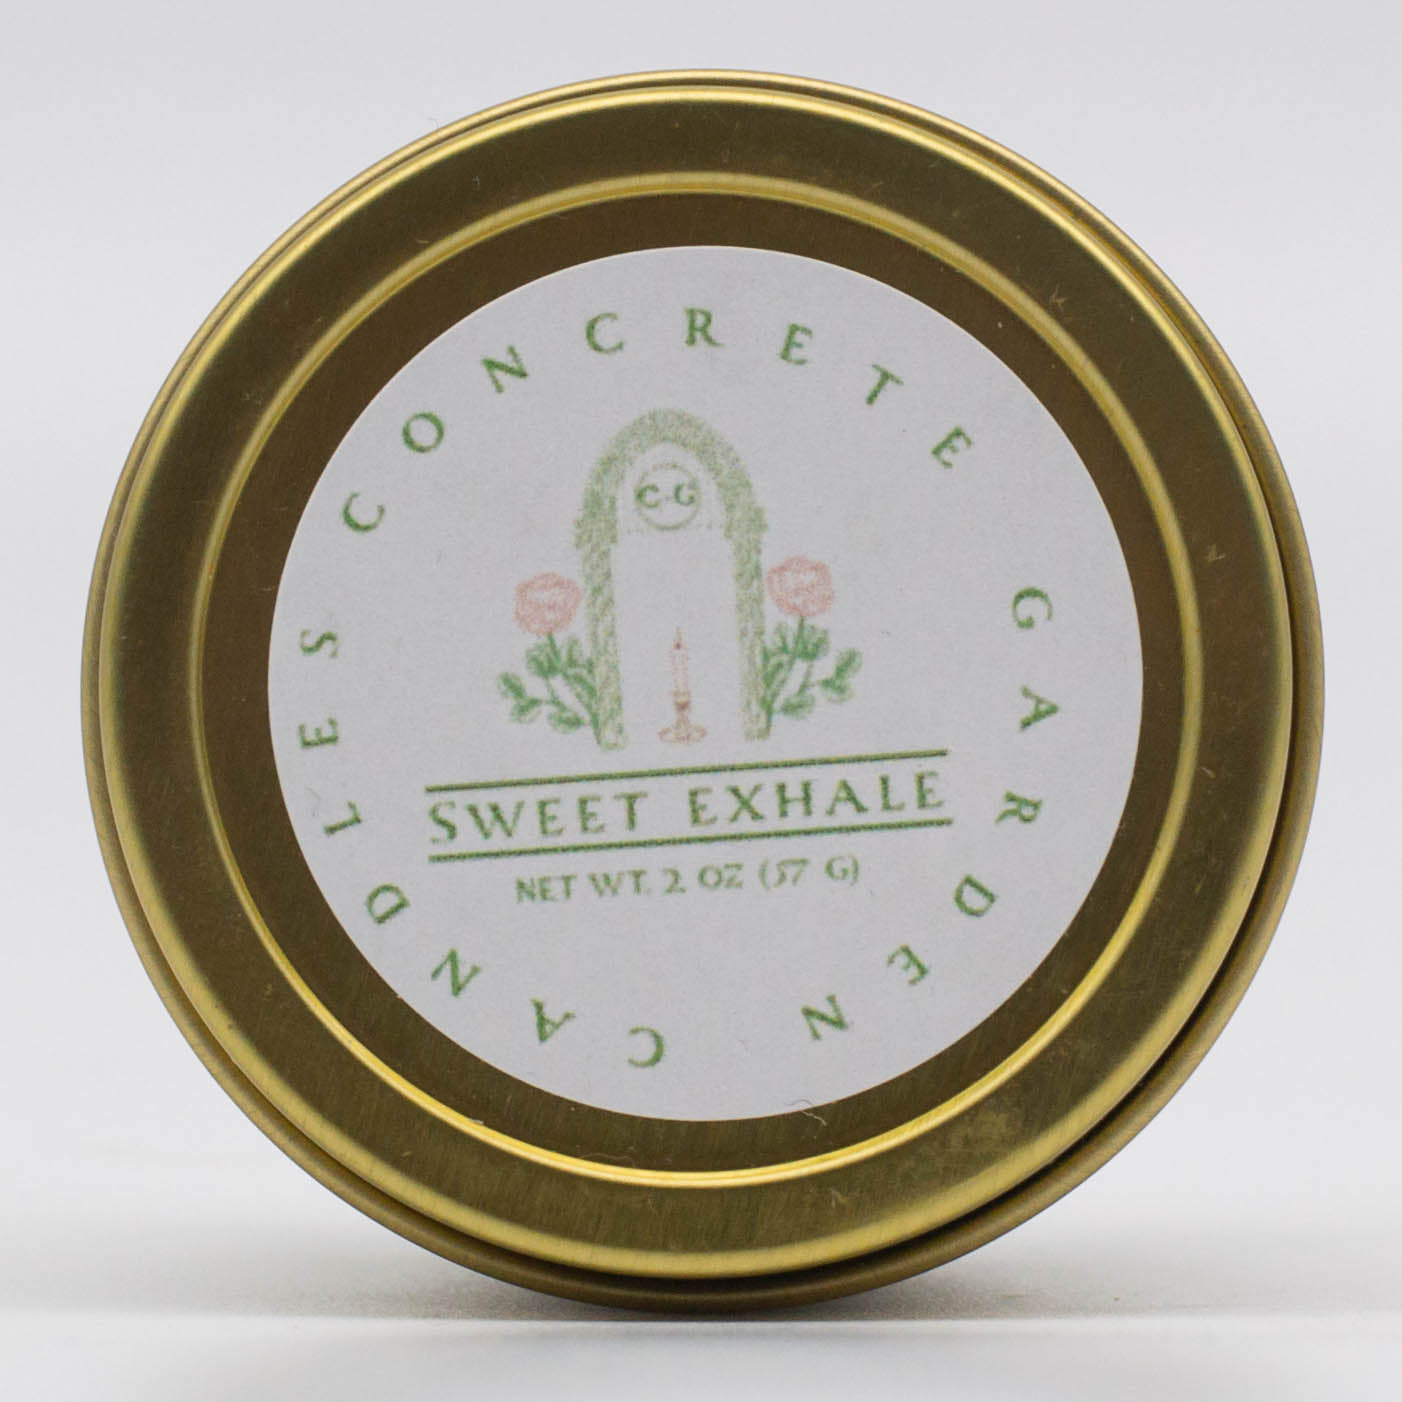 Sweet Exhale - Linen and Lemon Soy Candle